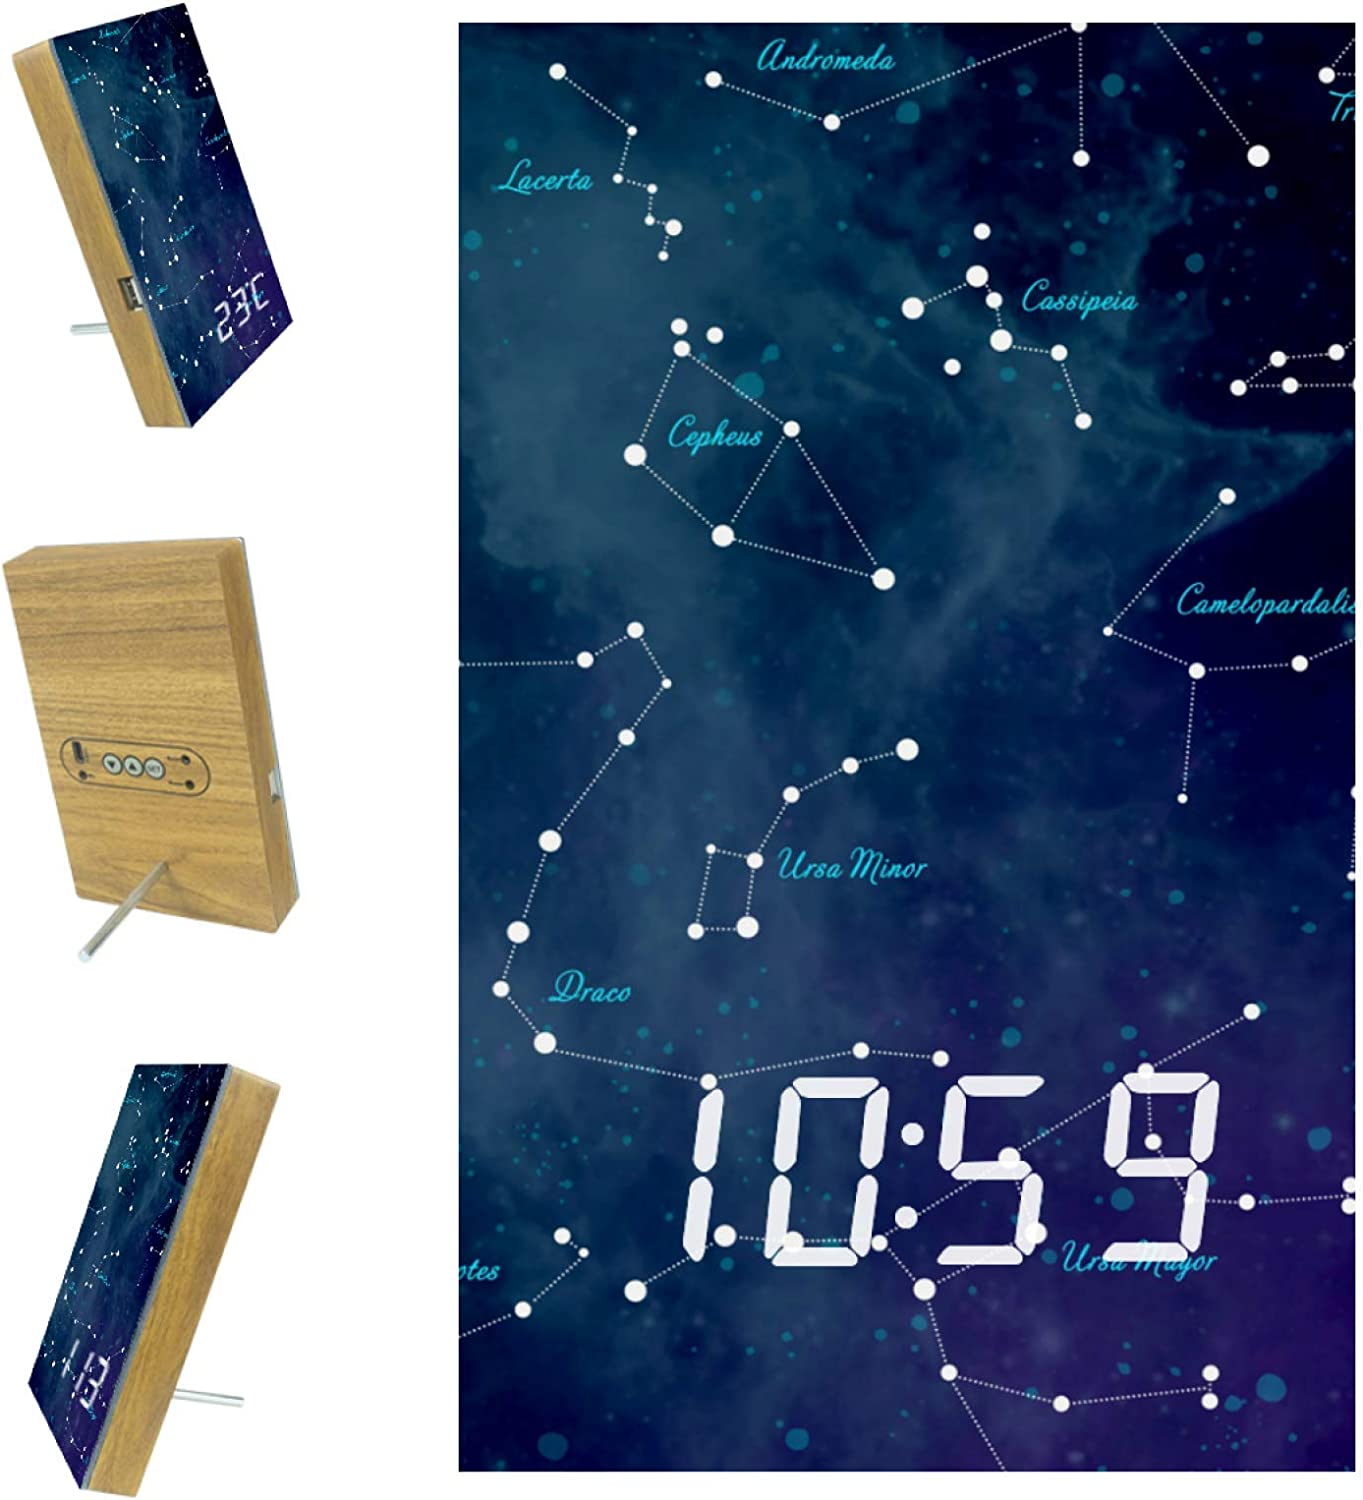 Digital Alarm Clock Sky Map Free shipping anywhere in the nation Astronomy Constellations Bedroom for San Francisco Mall